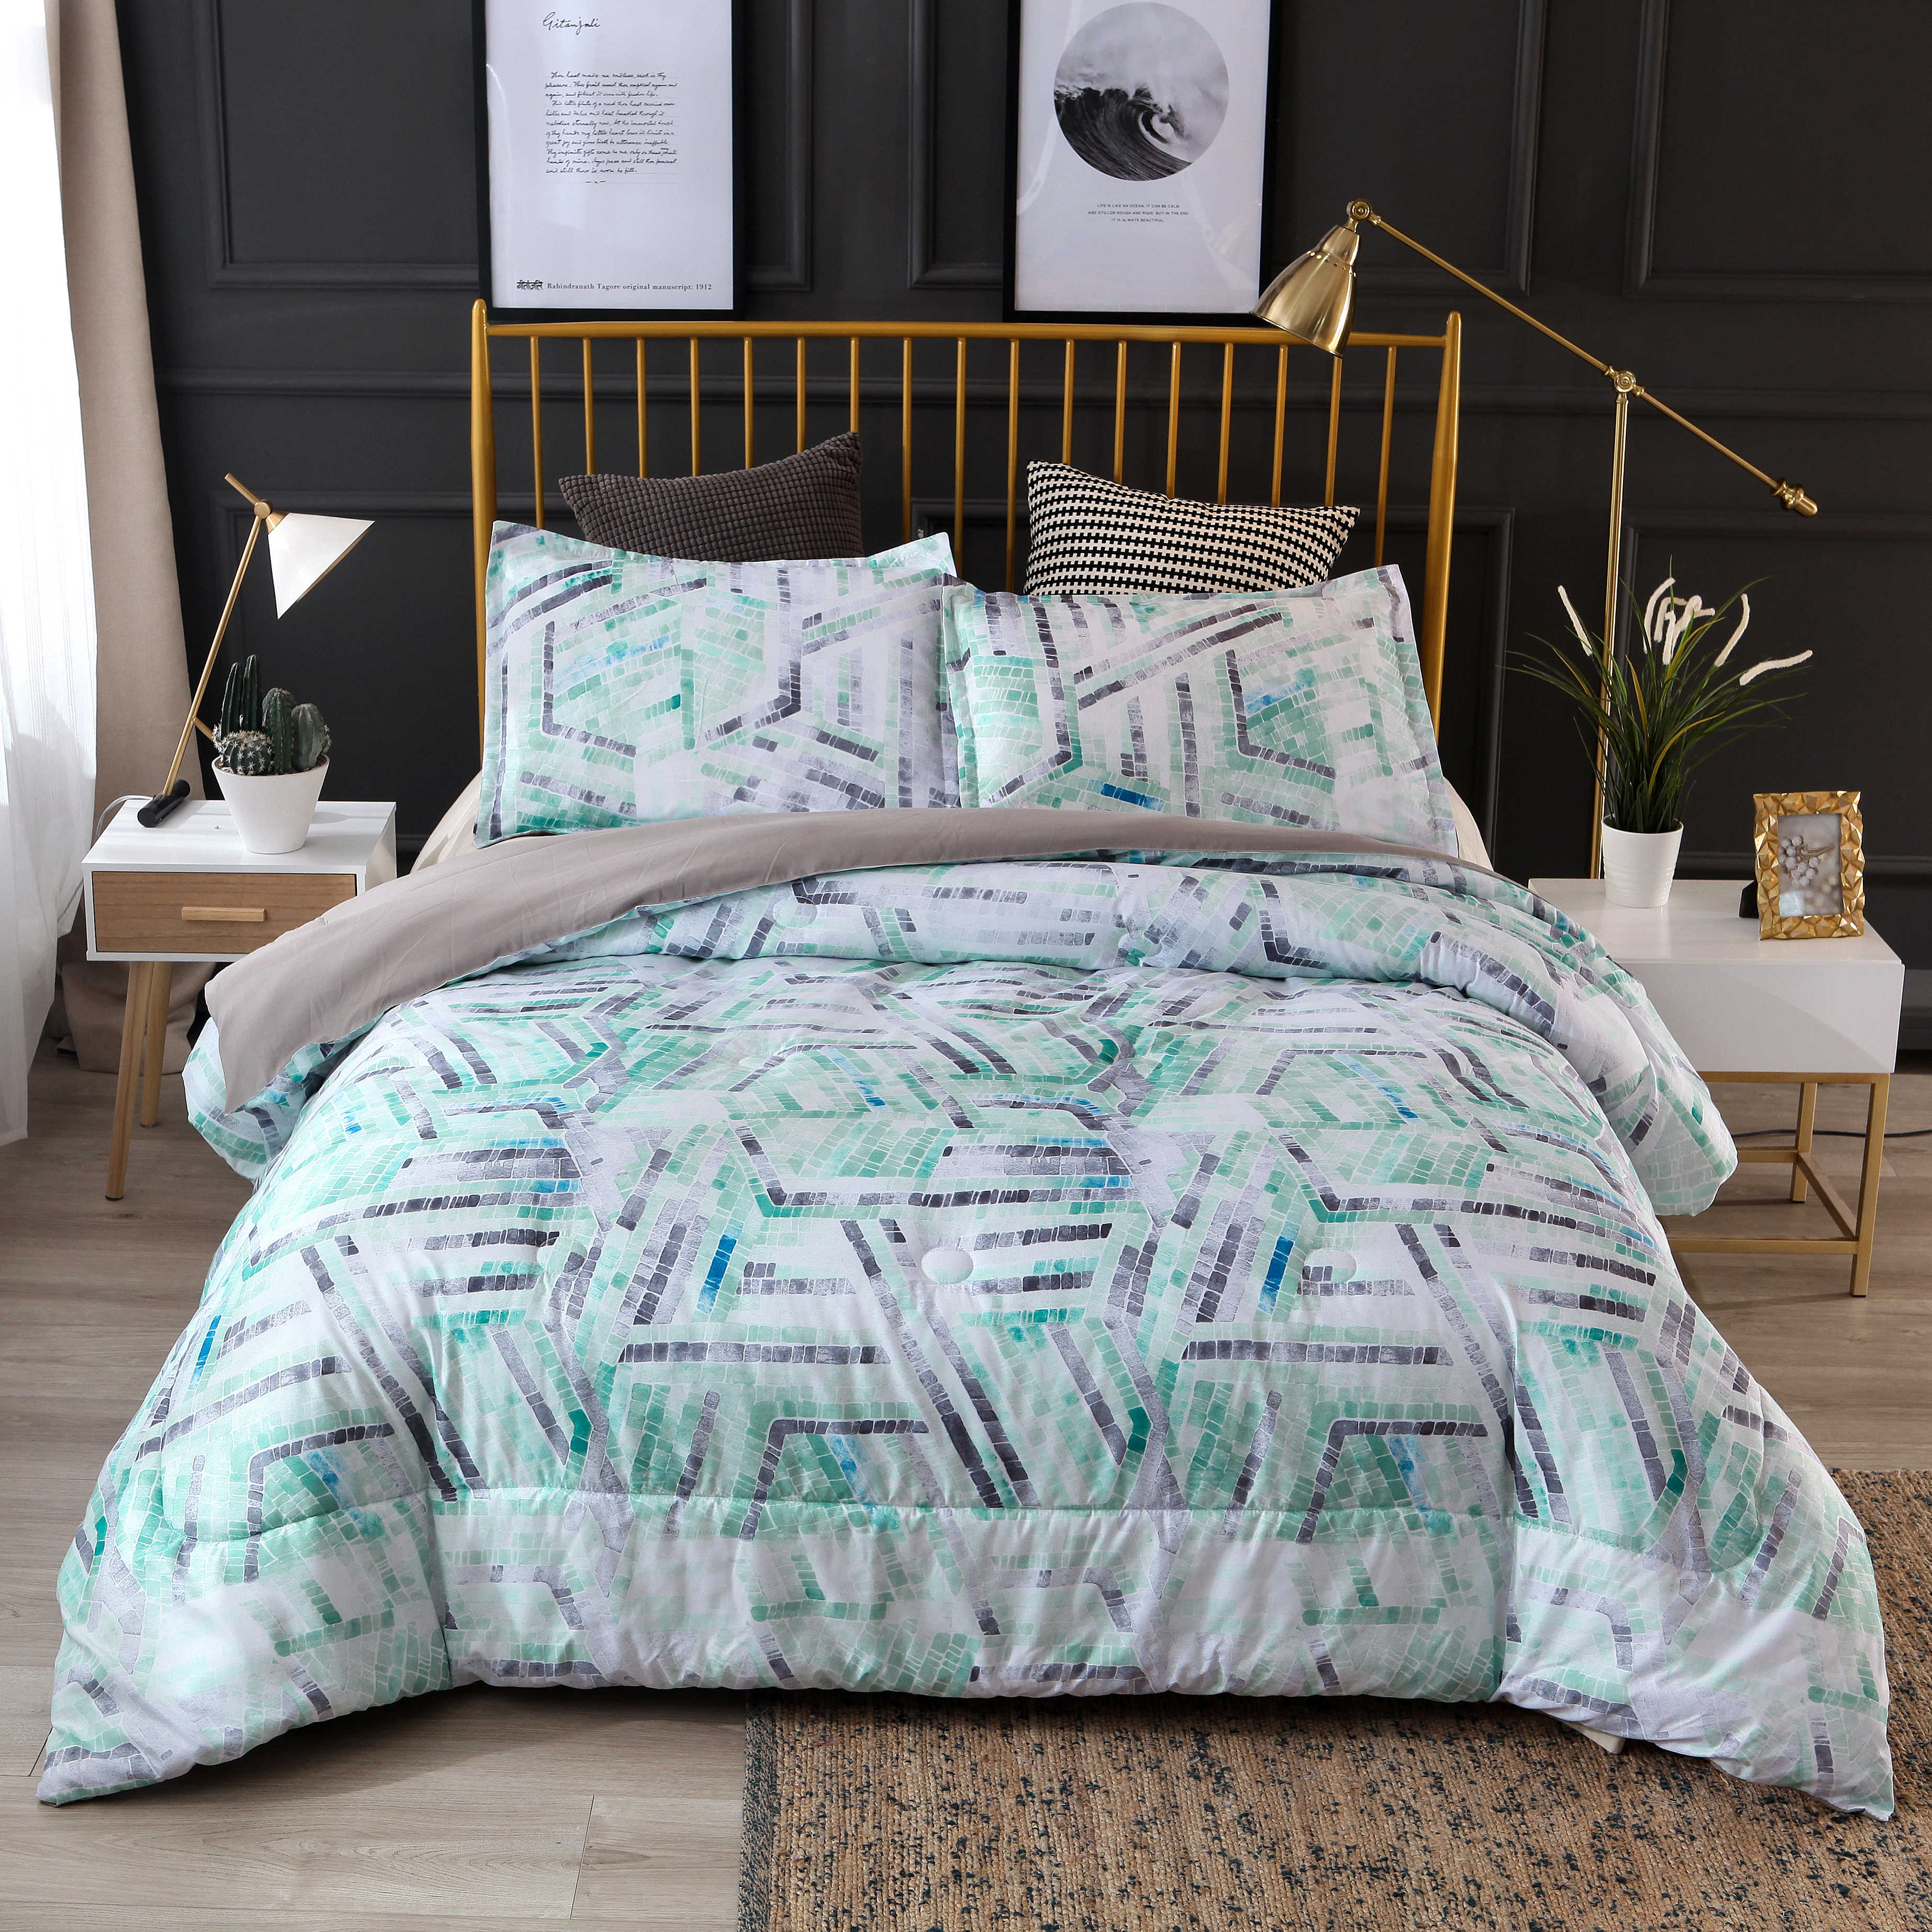 Picture of: Top Quality Hemp Single Sets Queen Size Comforter Set Buy Queen Size Comforter Set Single Comforter Sets Hemp Comforter Set Product On Alibaba Com